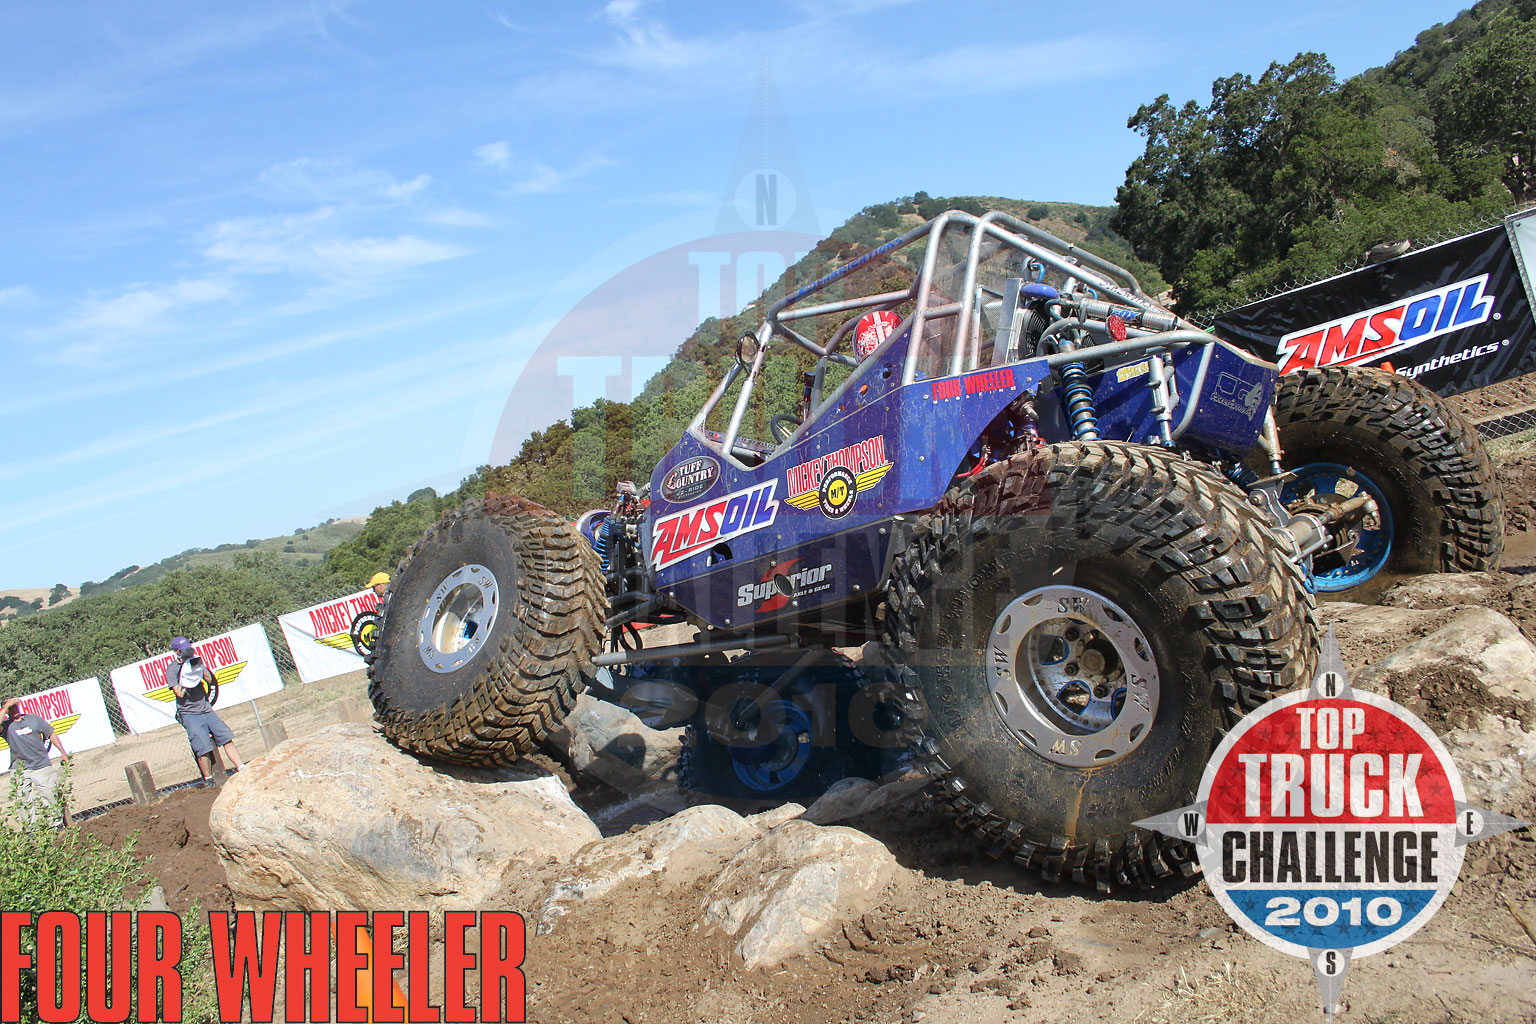 2010 Top Truck Challenge Frame Twister Joe Quichocho Tube Chassis Cj7 Buggy